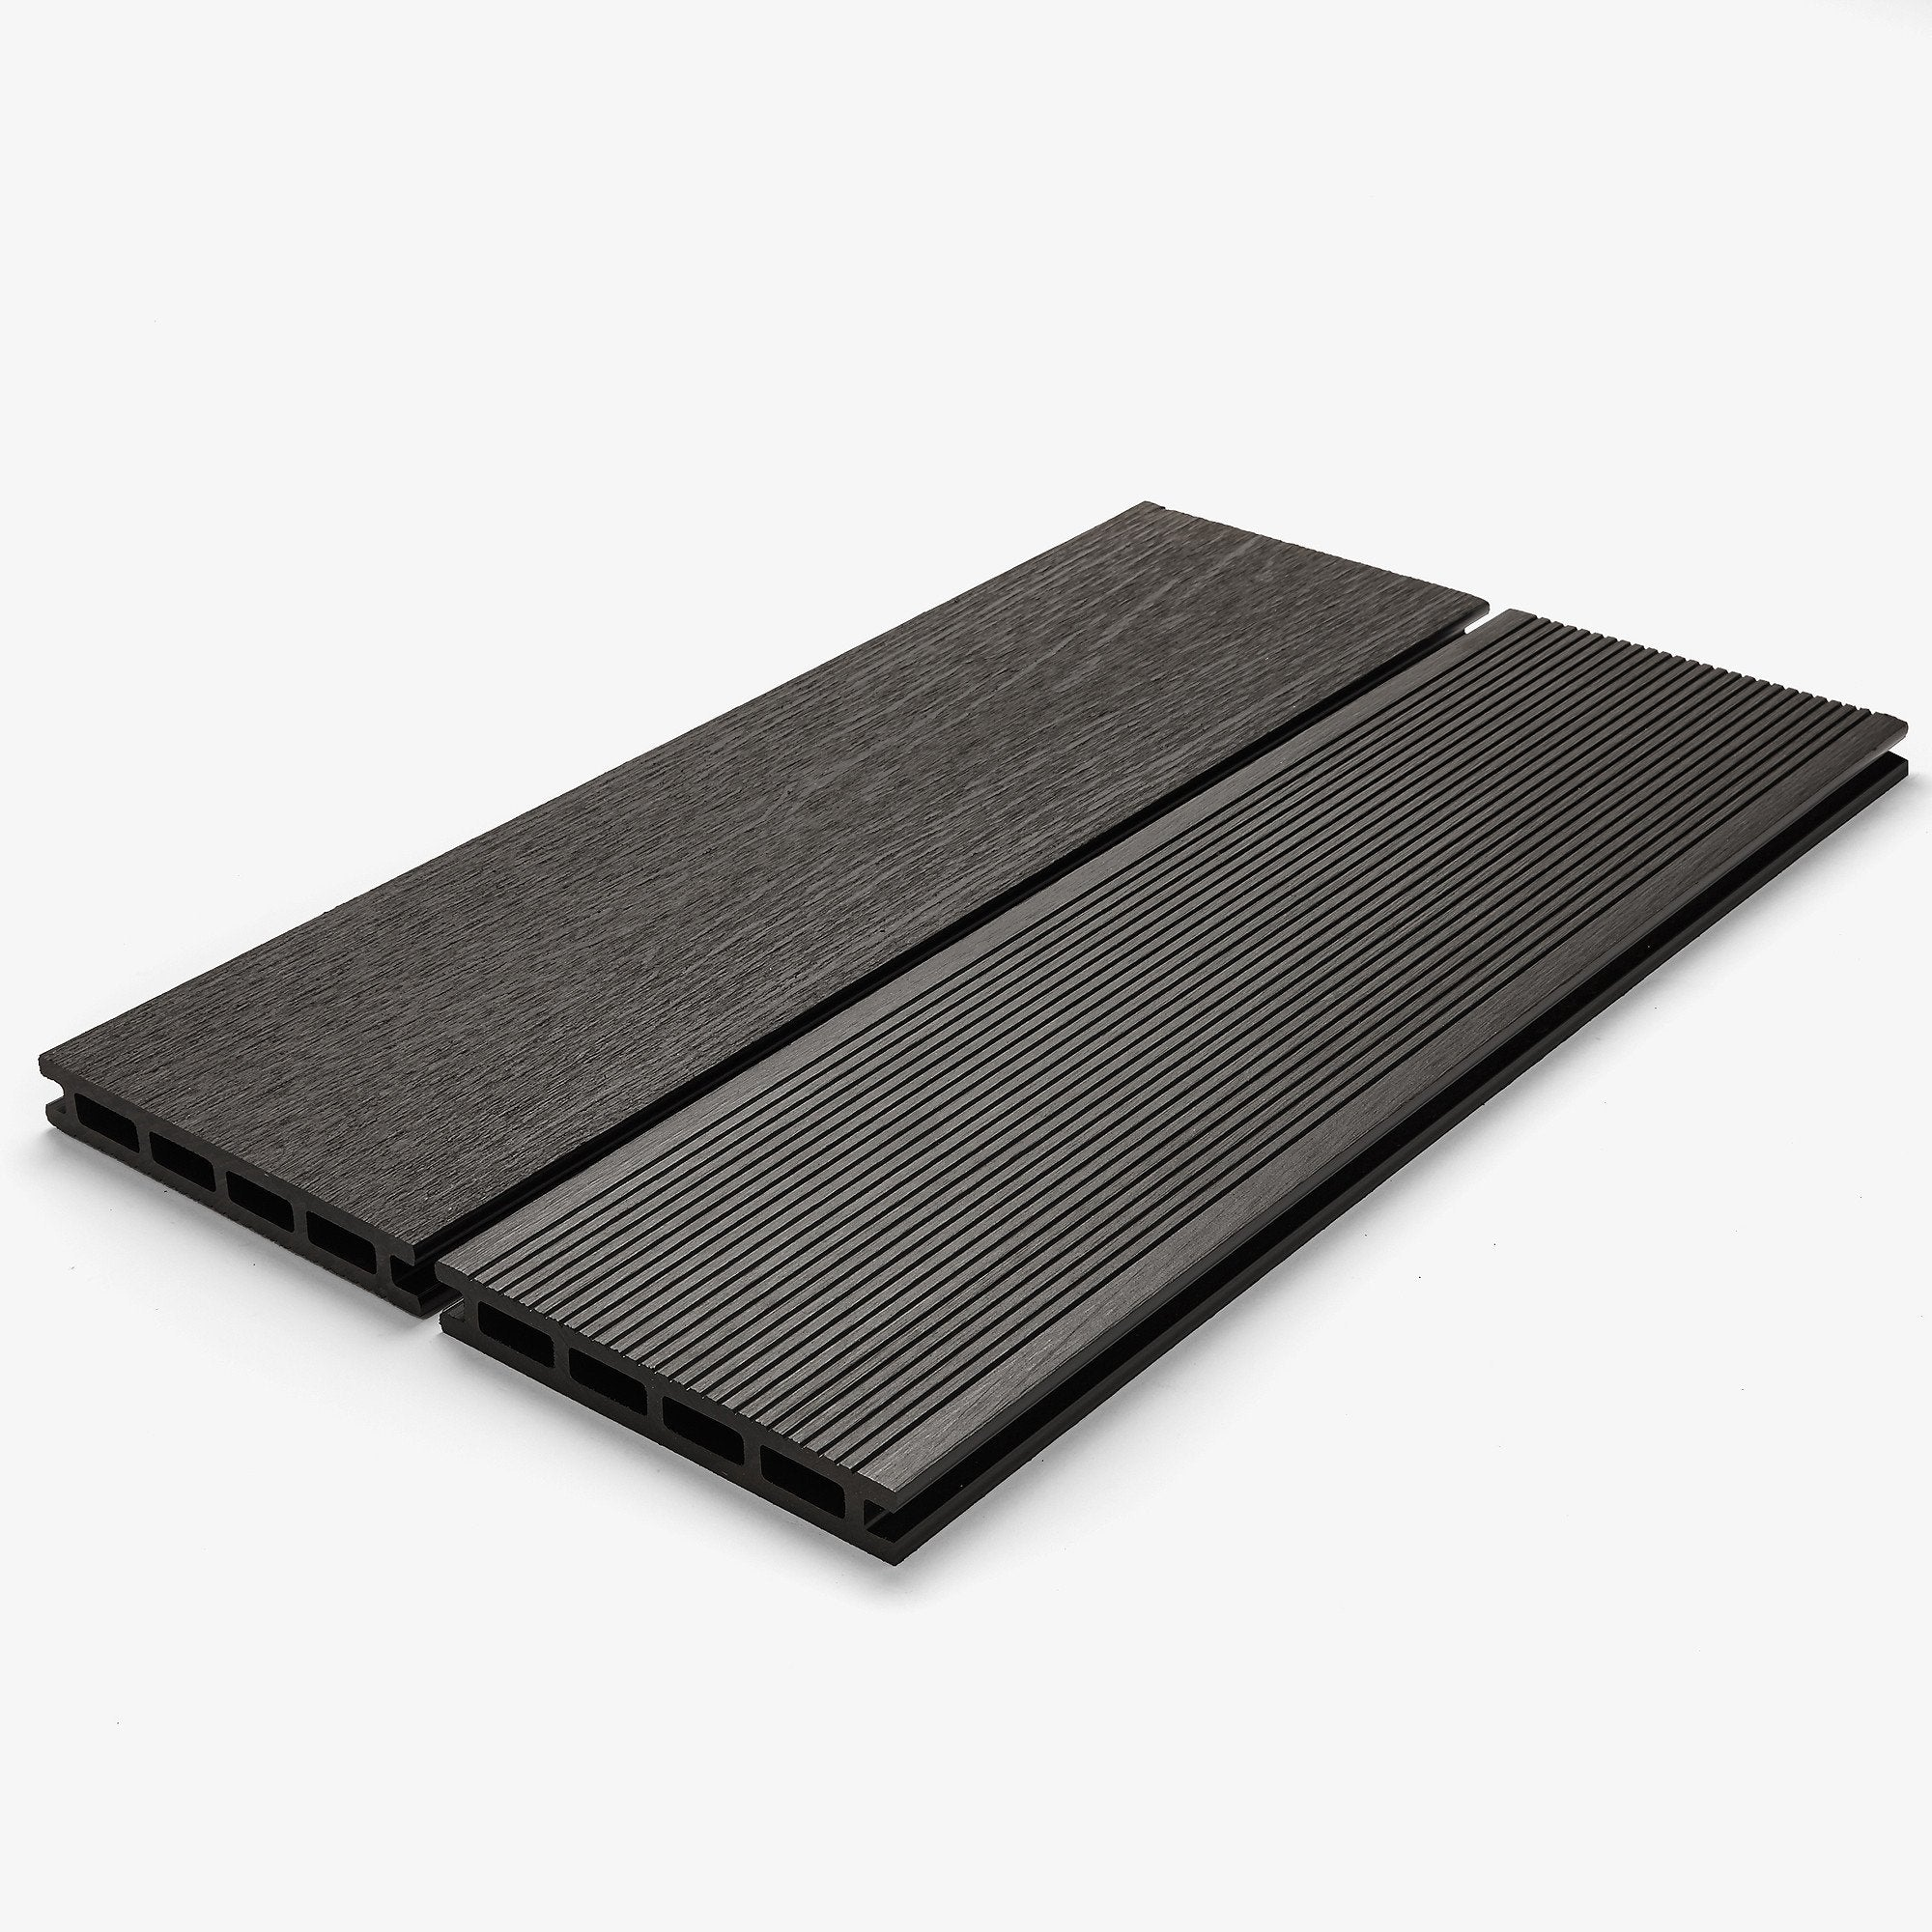 Granite Decking Board | DURACORE Decking